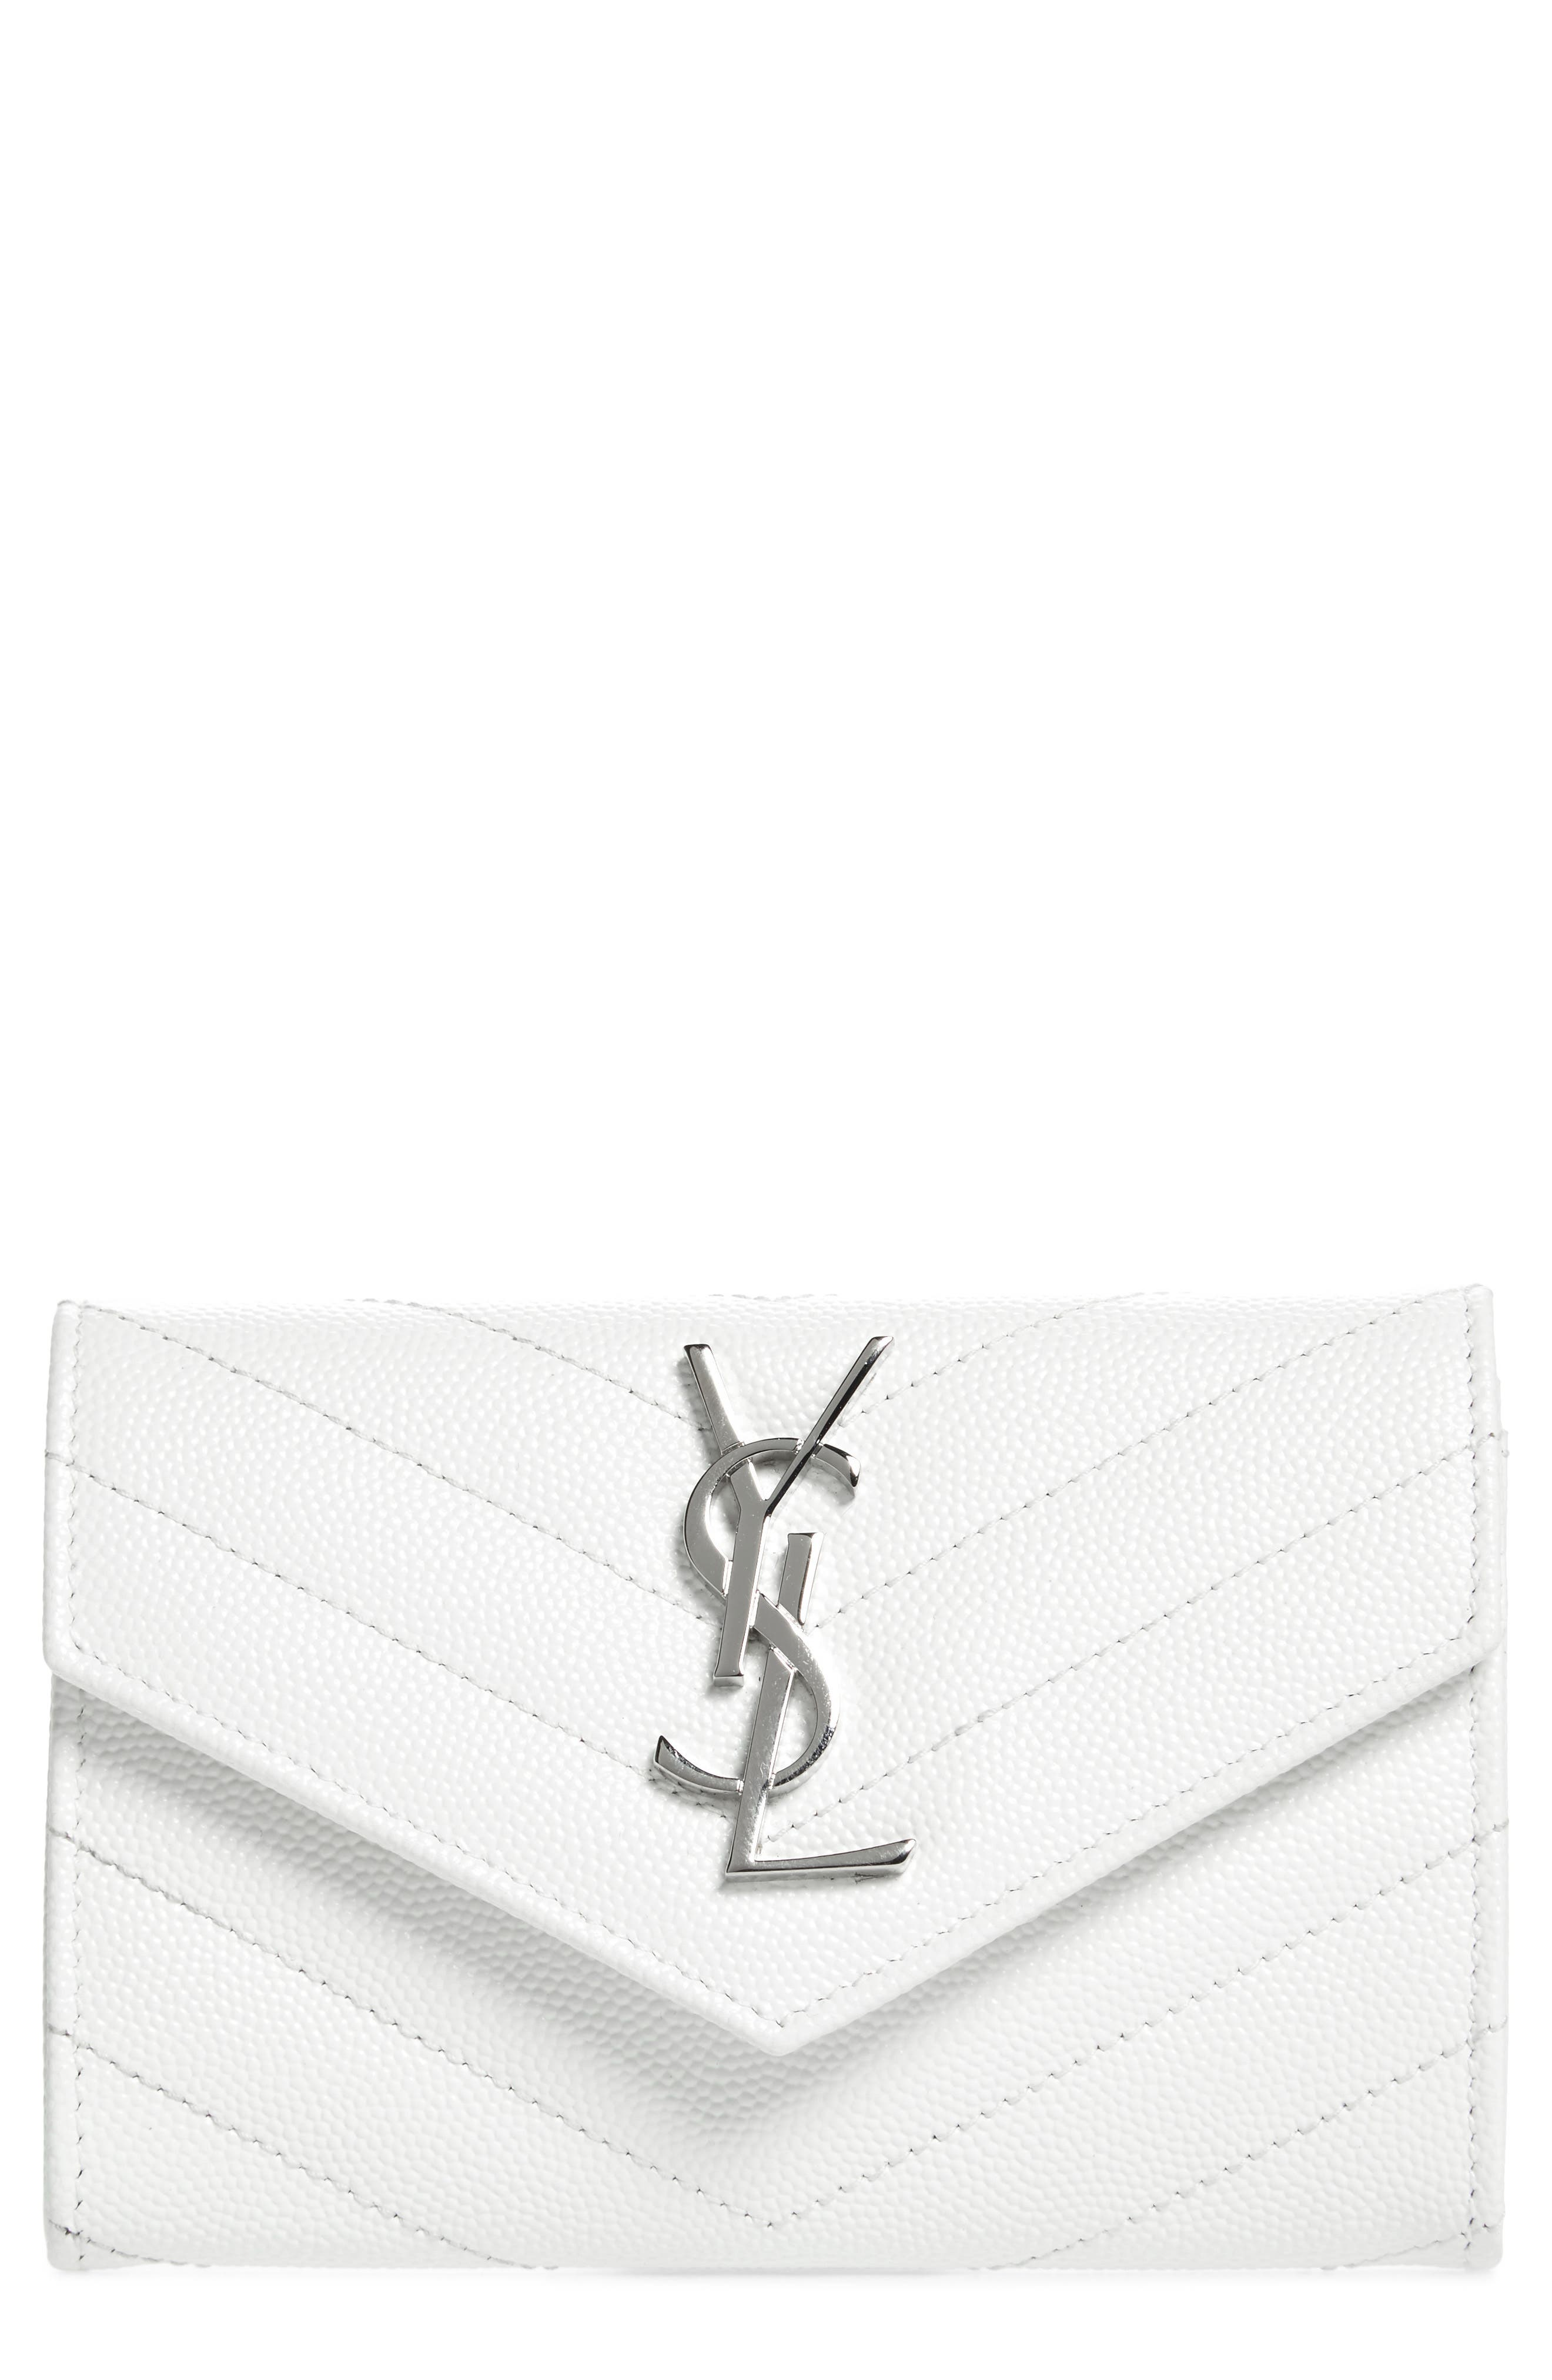 'Small Monogram' Leather French Wallet,                             Main thumbnail 1, color,                             Optic White